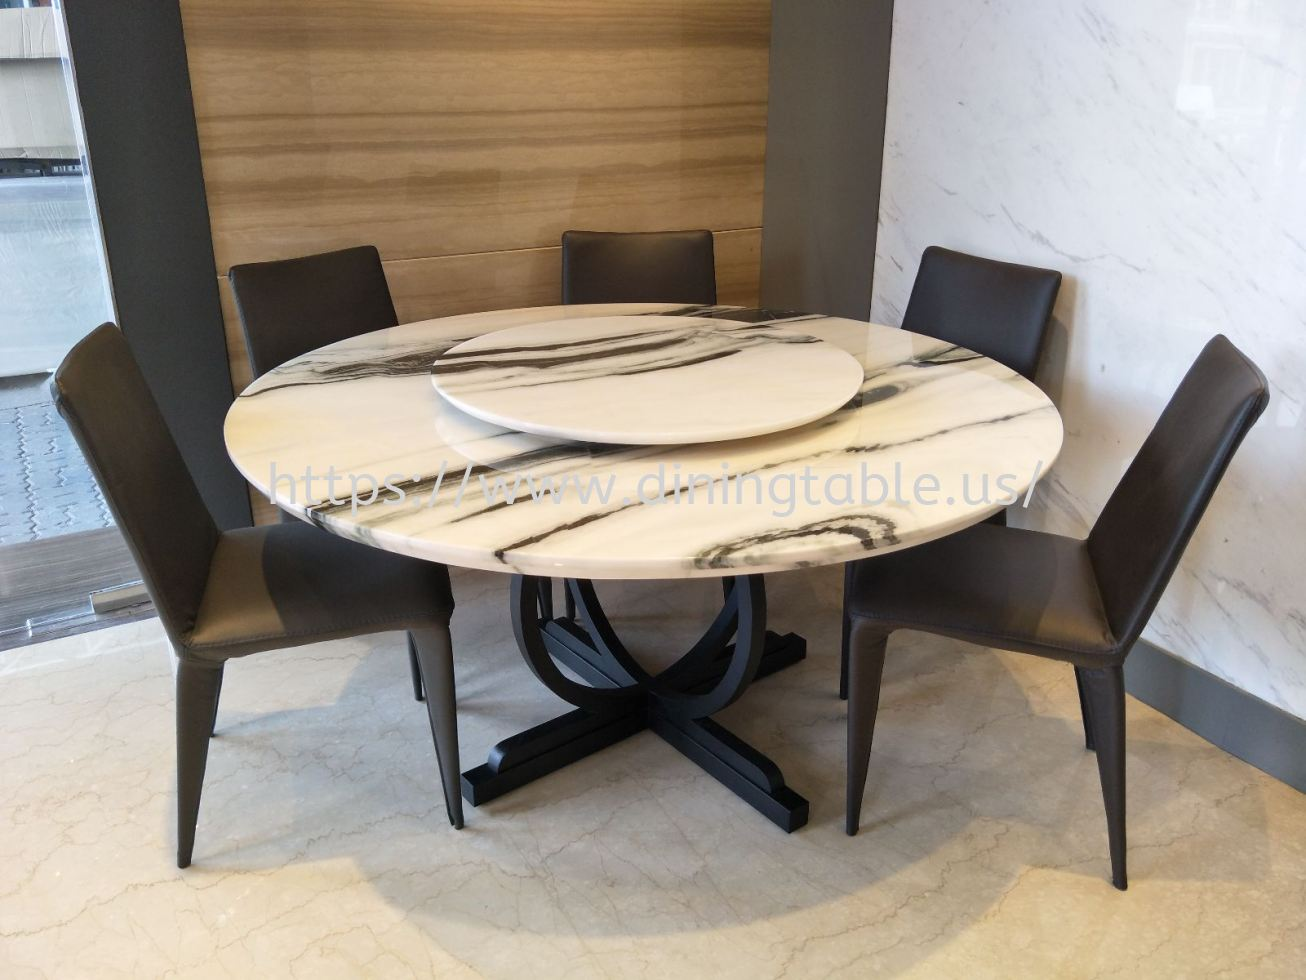 White Marble Dining Table - Stain Free Marble Top